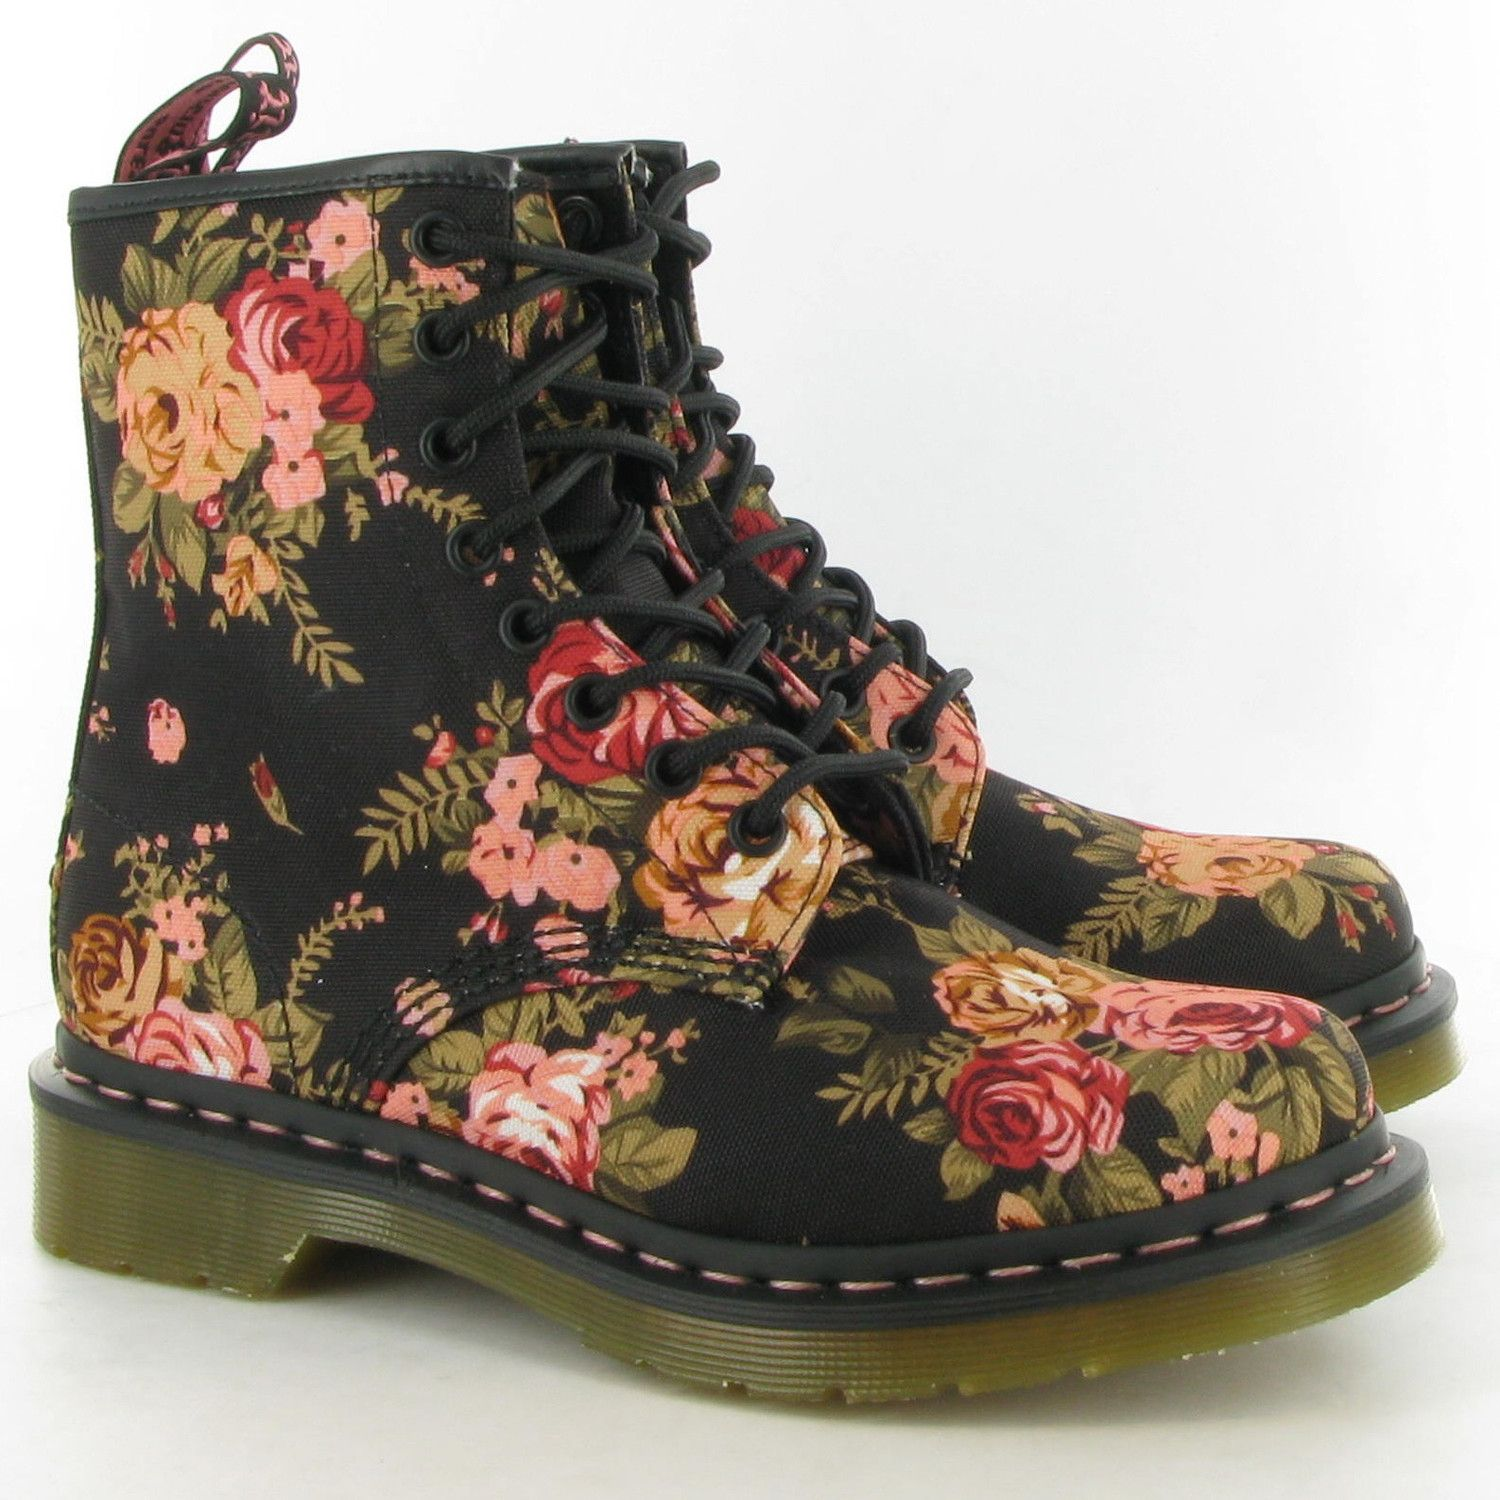 Excellent Womens Vintage Black Canvas Victorian Floral Dr Martens 1460 Style, 8 Eye Boot Excellent Condition Size 7, Fits A Womans 75 Traditional, Vintageinspired Design, It Offers A Distinctly Feminine, Soft Spin On The Classic 8eye Boot